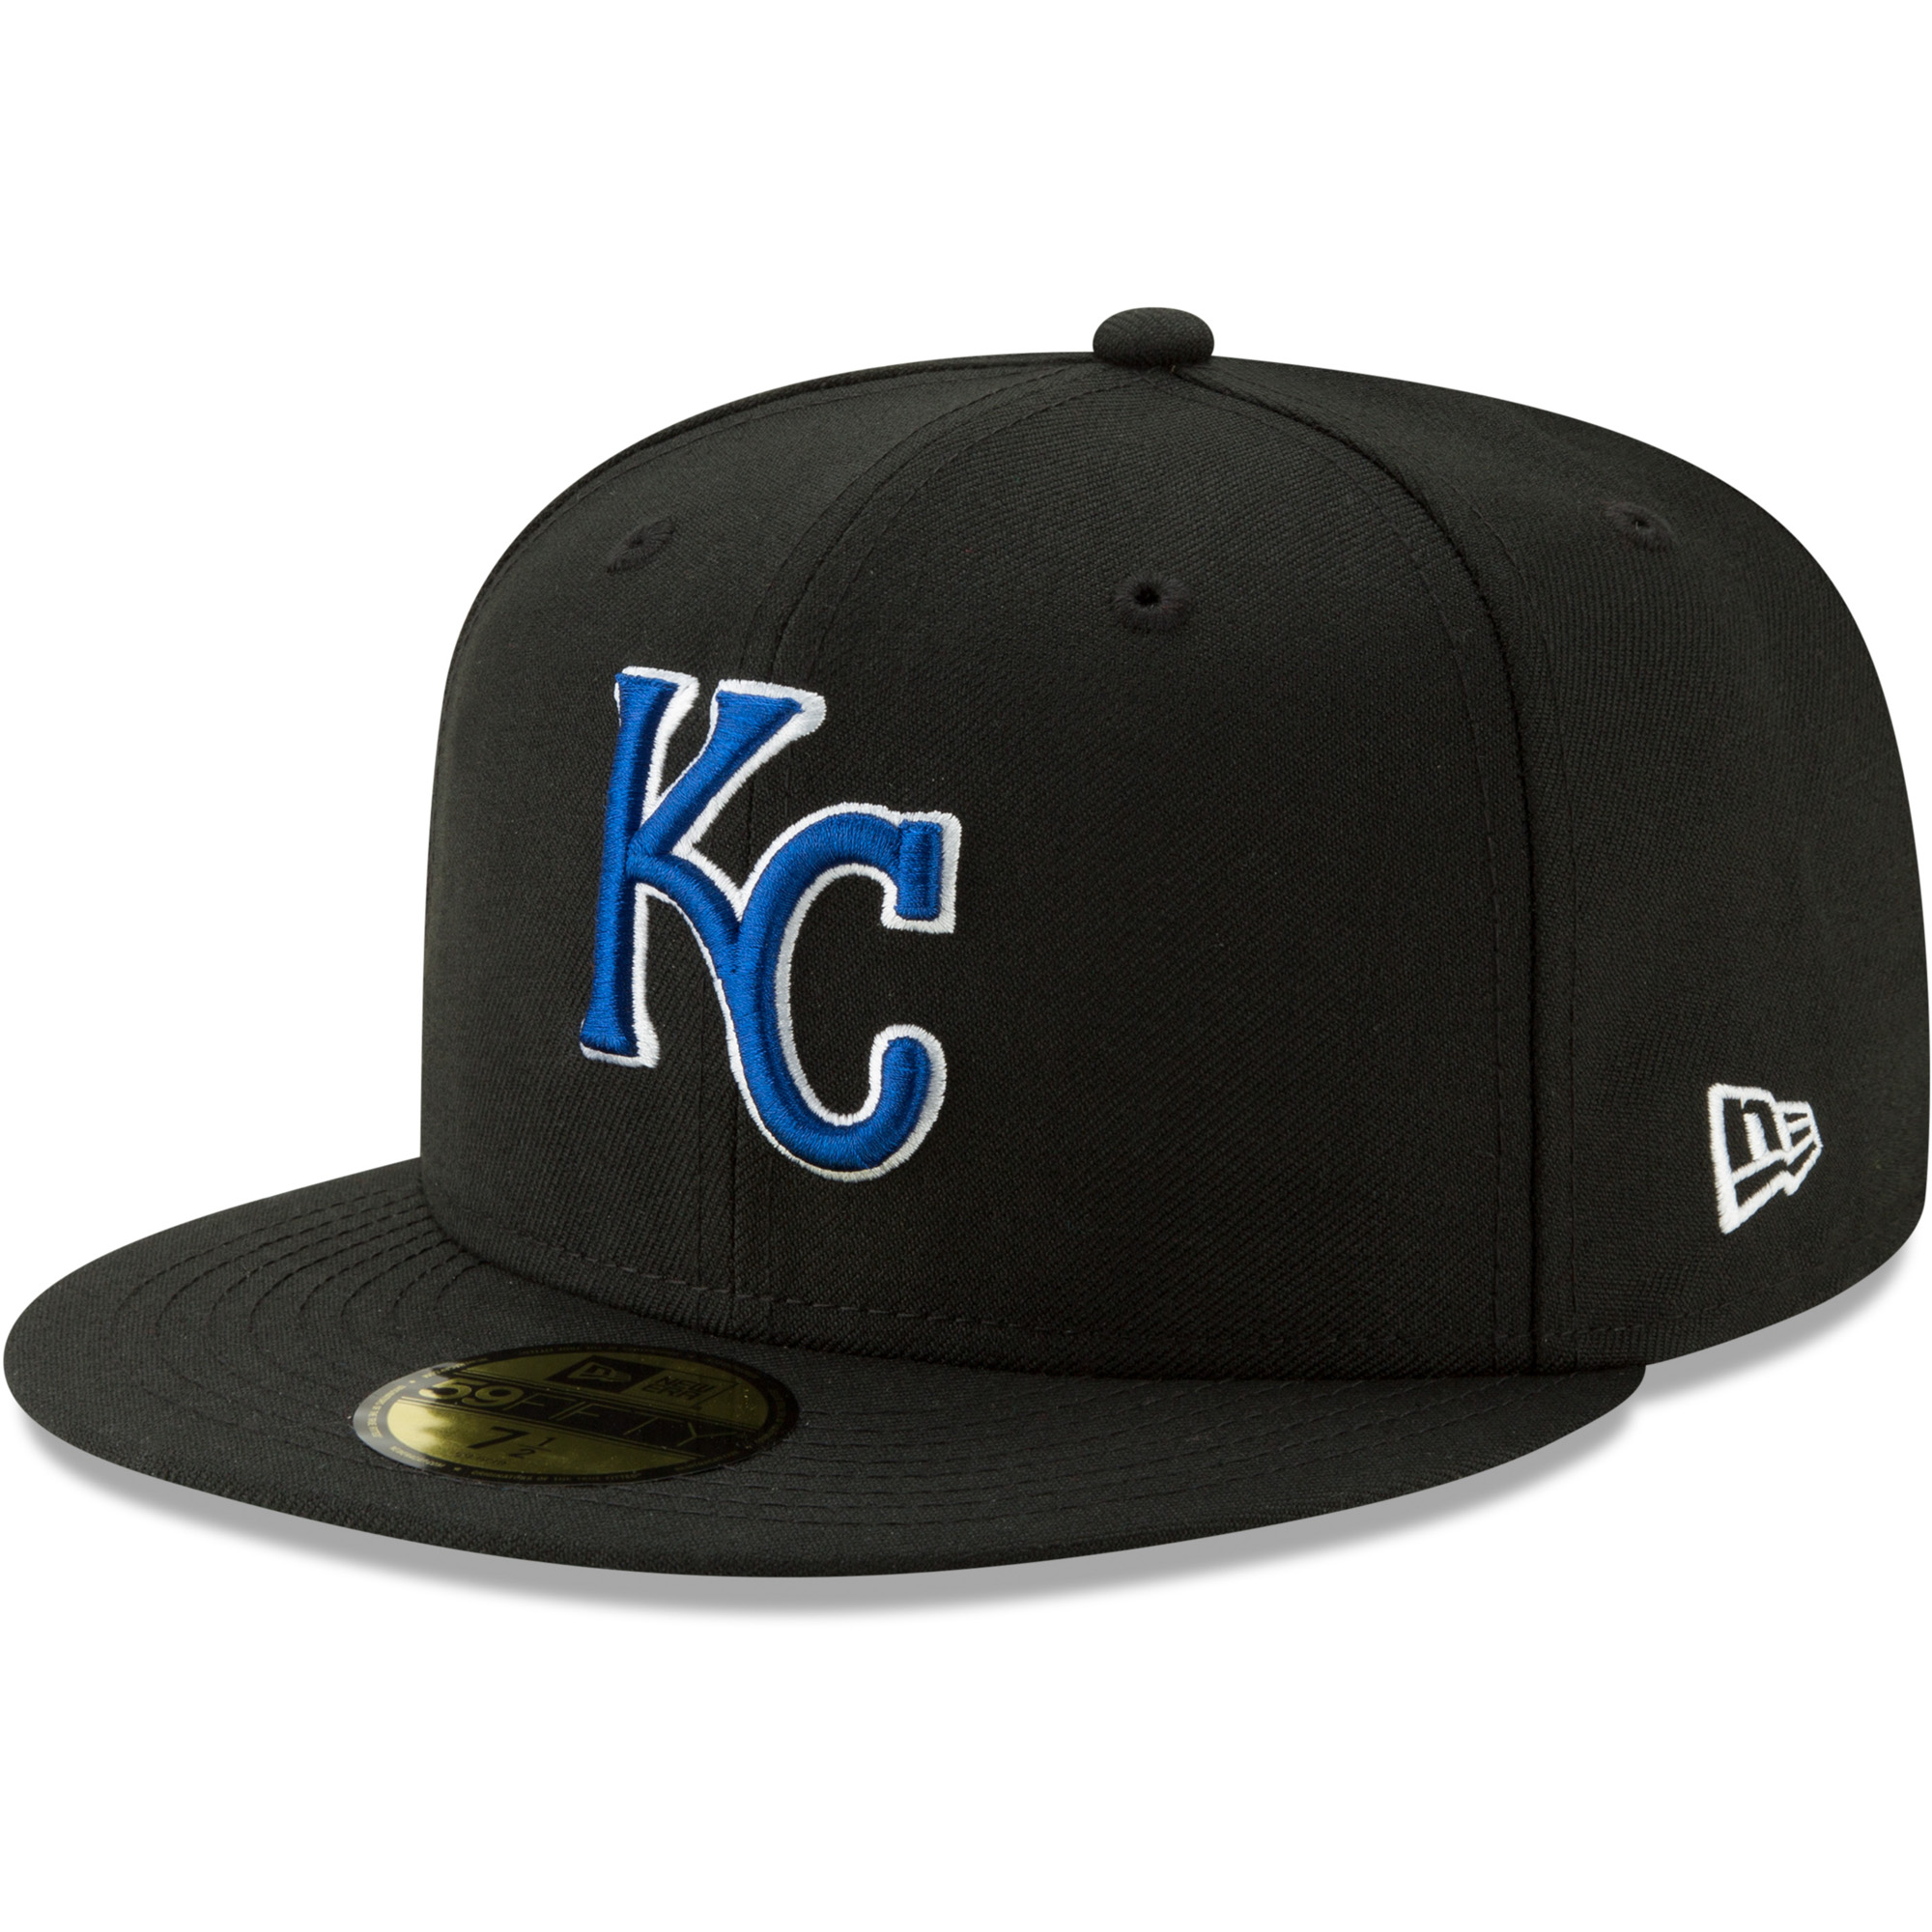 Kansas City Royals New Era Cooperstown Collection Alt Logo Pack 59FIFTY Fitted Hat - Black